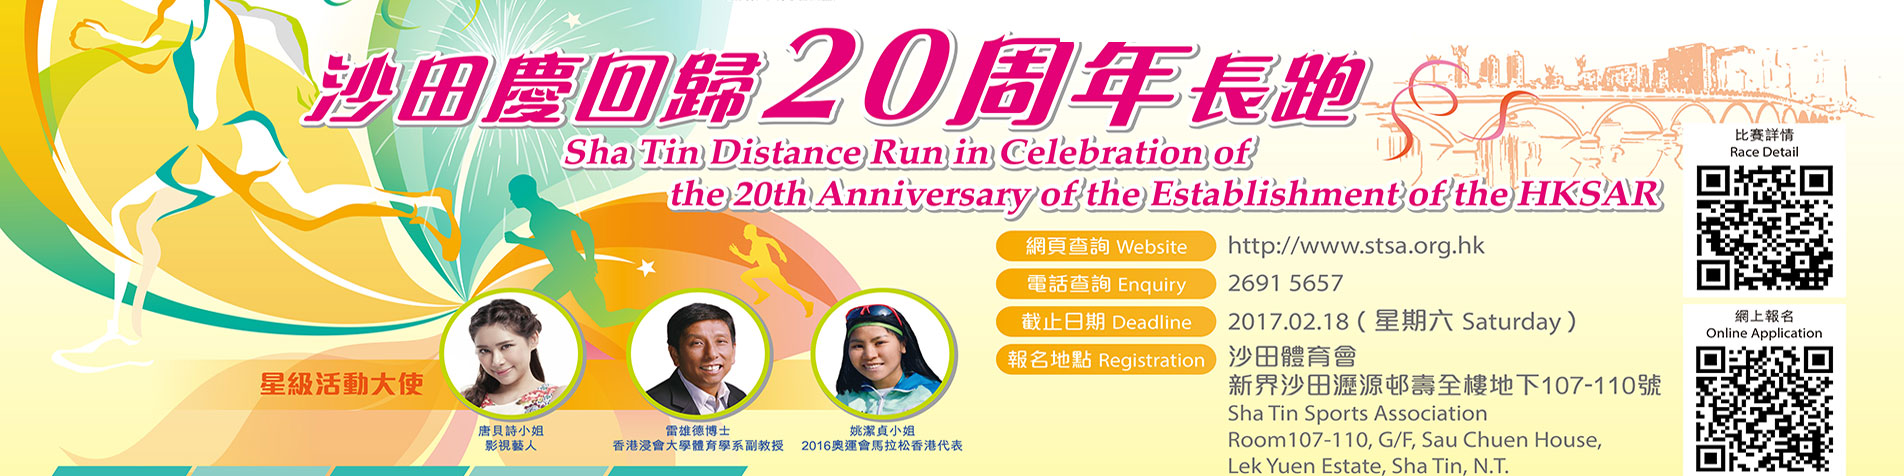 Sha Tin Distance Run in Celebration of the 20th Anniversary of the Establishment of the HKSAR